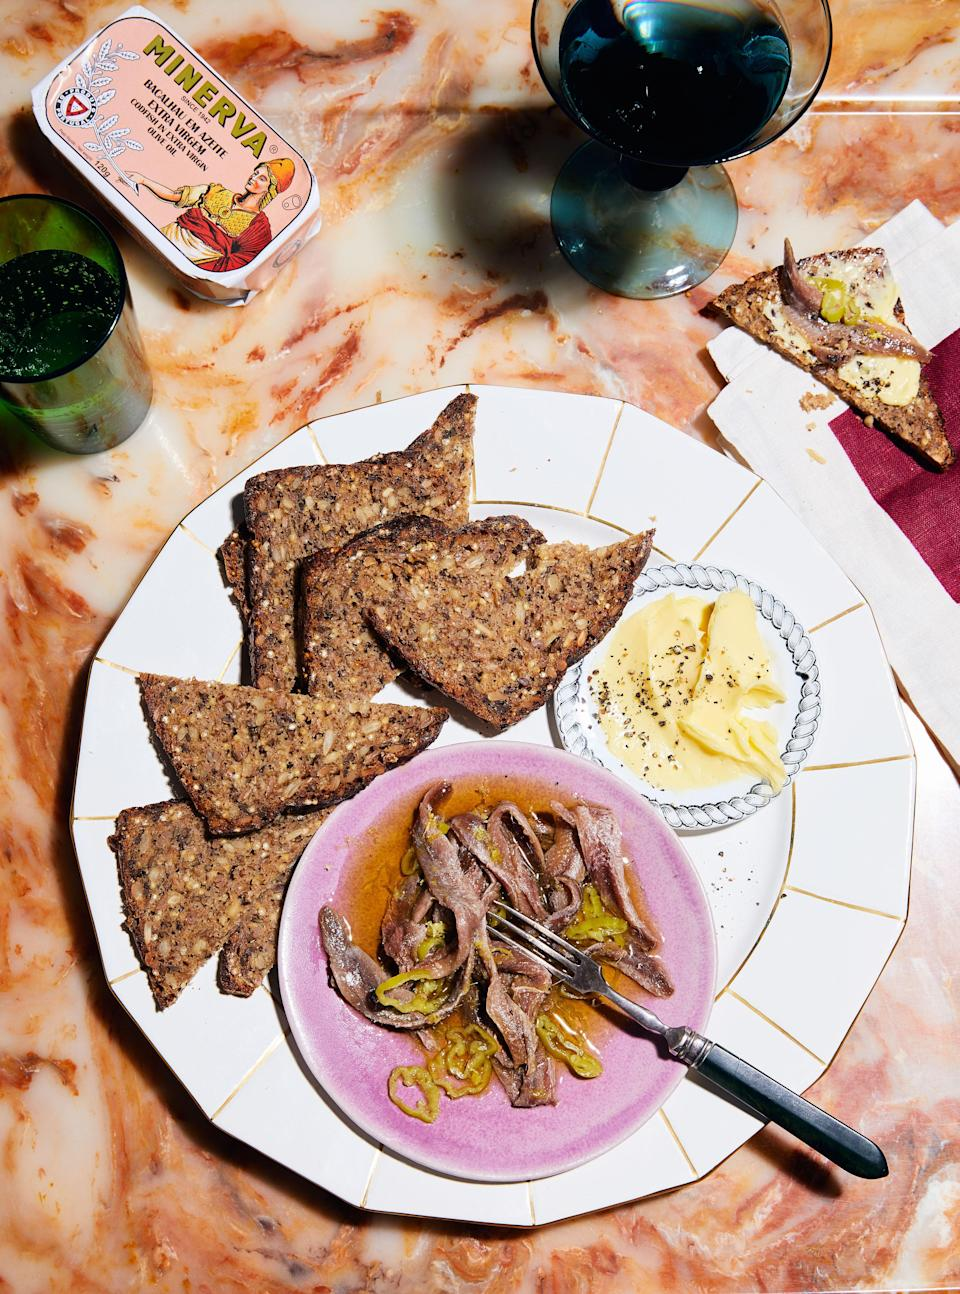 """<a href=""""https://www.bonappetit.com/recipe/marinated-anchovies-with-bread-and-butter?mbid=synd_yahoo_rss"""" rel=""""nofollow noopener"""" target=""""_blank"""" data-ylk=""""slk:See recipe."""" class=""""link rapid-noclick-resp"""">See recipe.</a>"""